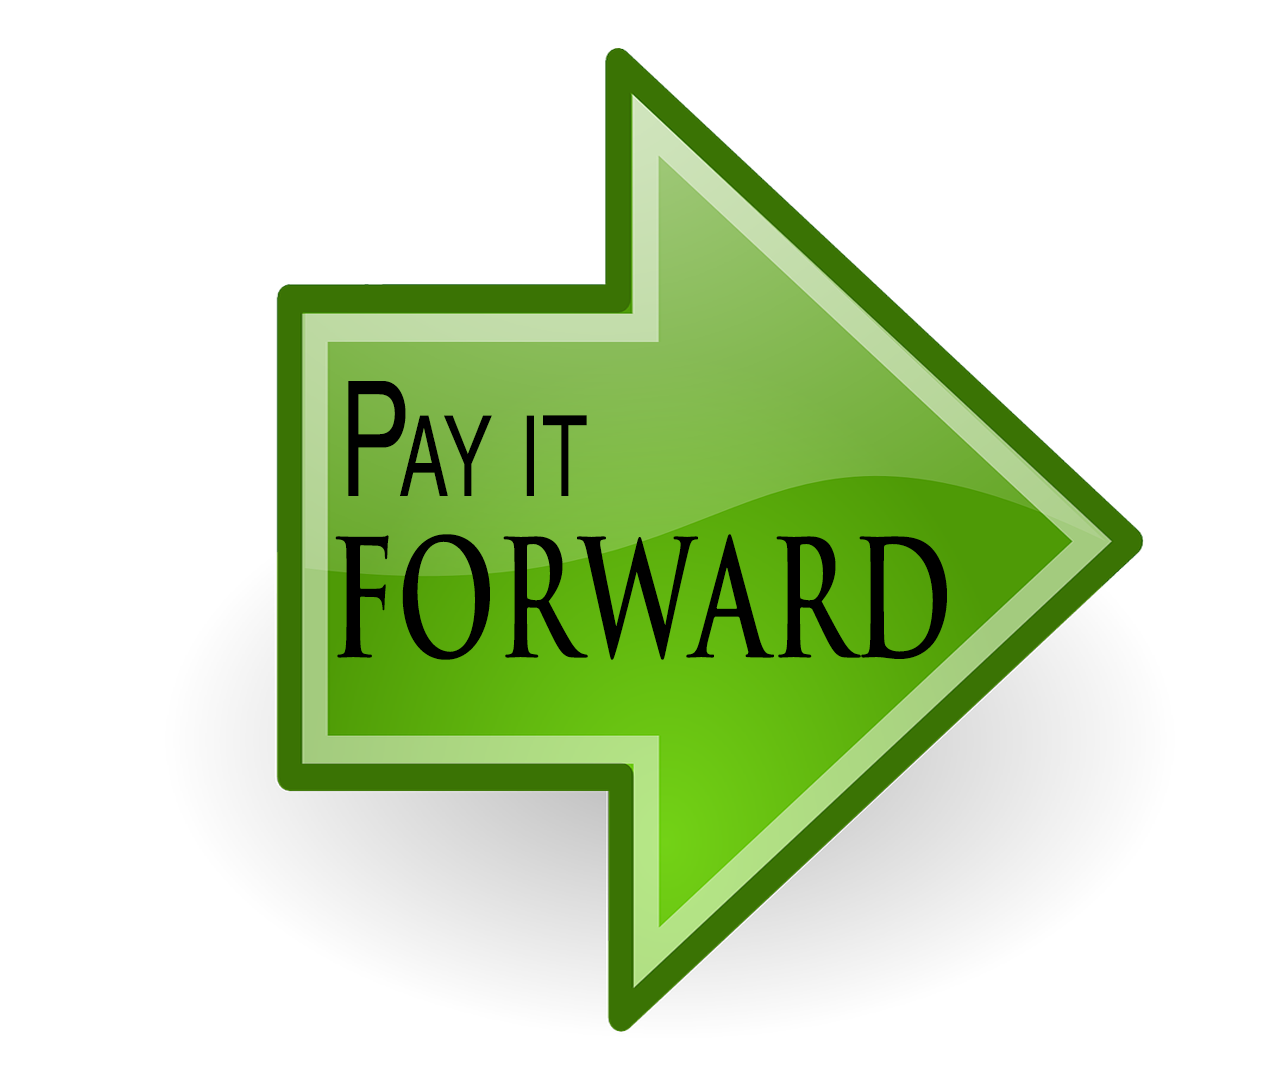 pay it forward_04